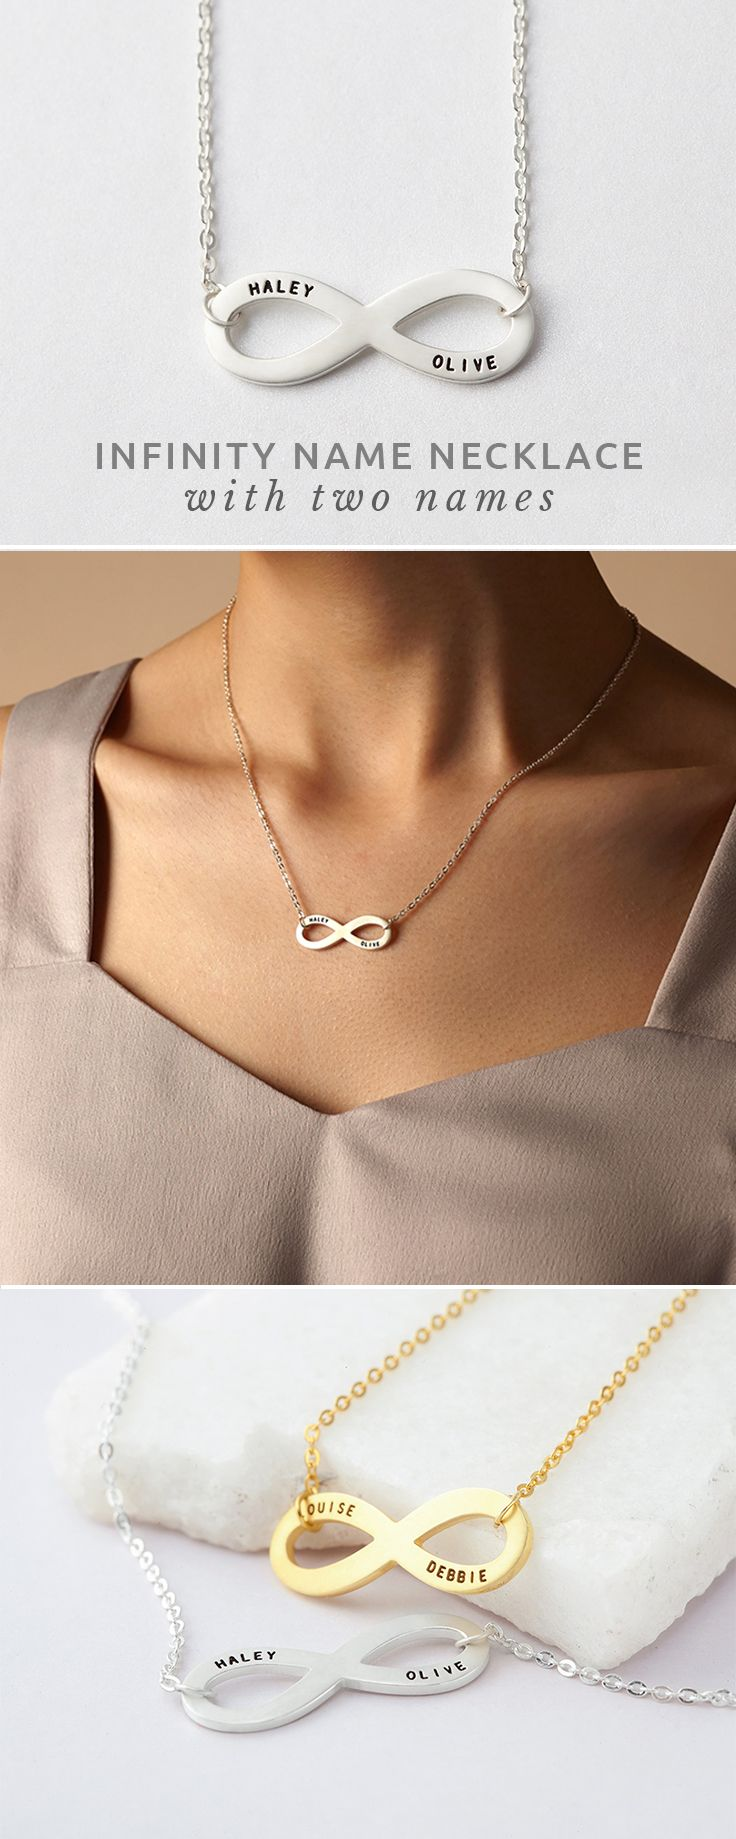 Infinity necklace with names • Infinity name necklace • Infinity jewelry • Infinity necklaces • infinity necklace for her • infinity necklace silver • gold infinity necklaces • infinity necklace for mom • infinity jewelry best friend gifts • will you be my bridesmaid gifts • ideas for bridesmaid gifts • birthday presents for wife • sentimental gifts for friends • mother's day gift ideas for mom • gift ideas for sister • best mother gifts • best mothers day gifts for mother in law • high…